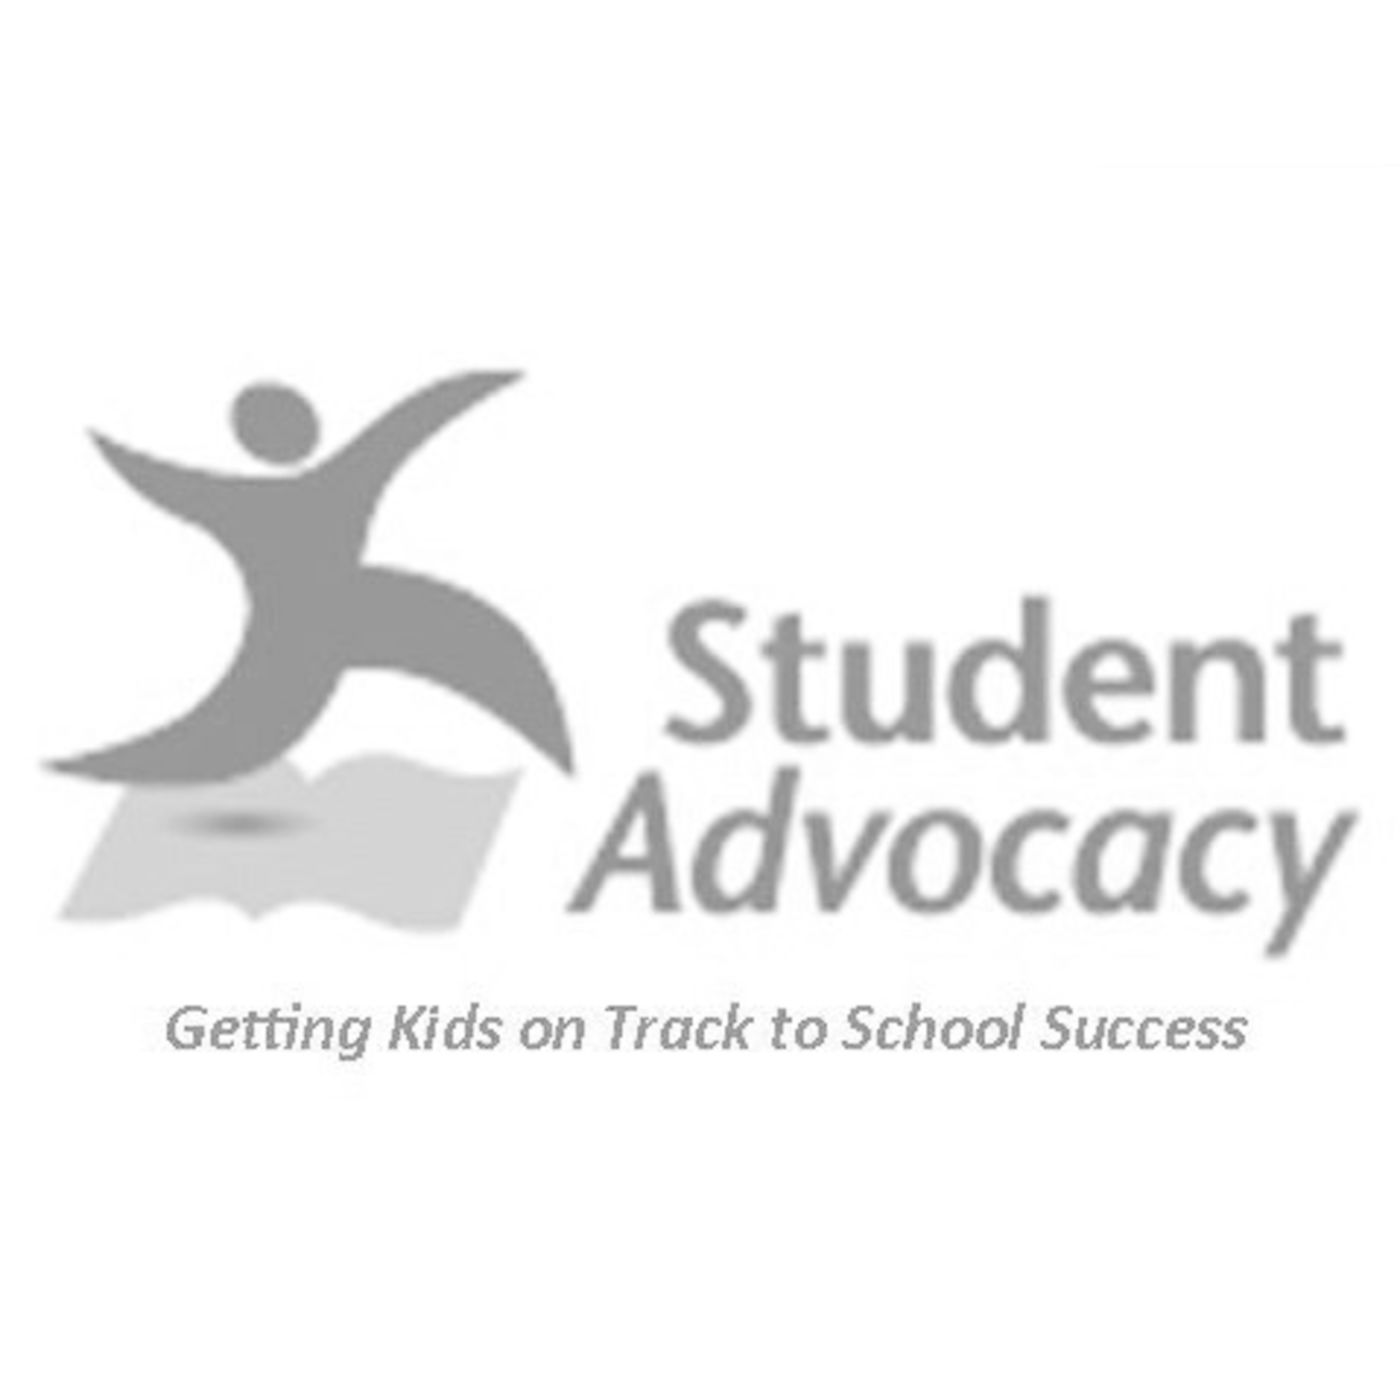 An On-Site Advocate for Every Student- Concept by Dr. Elias